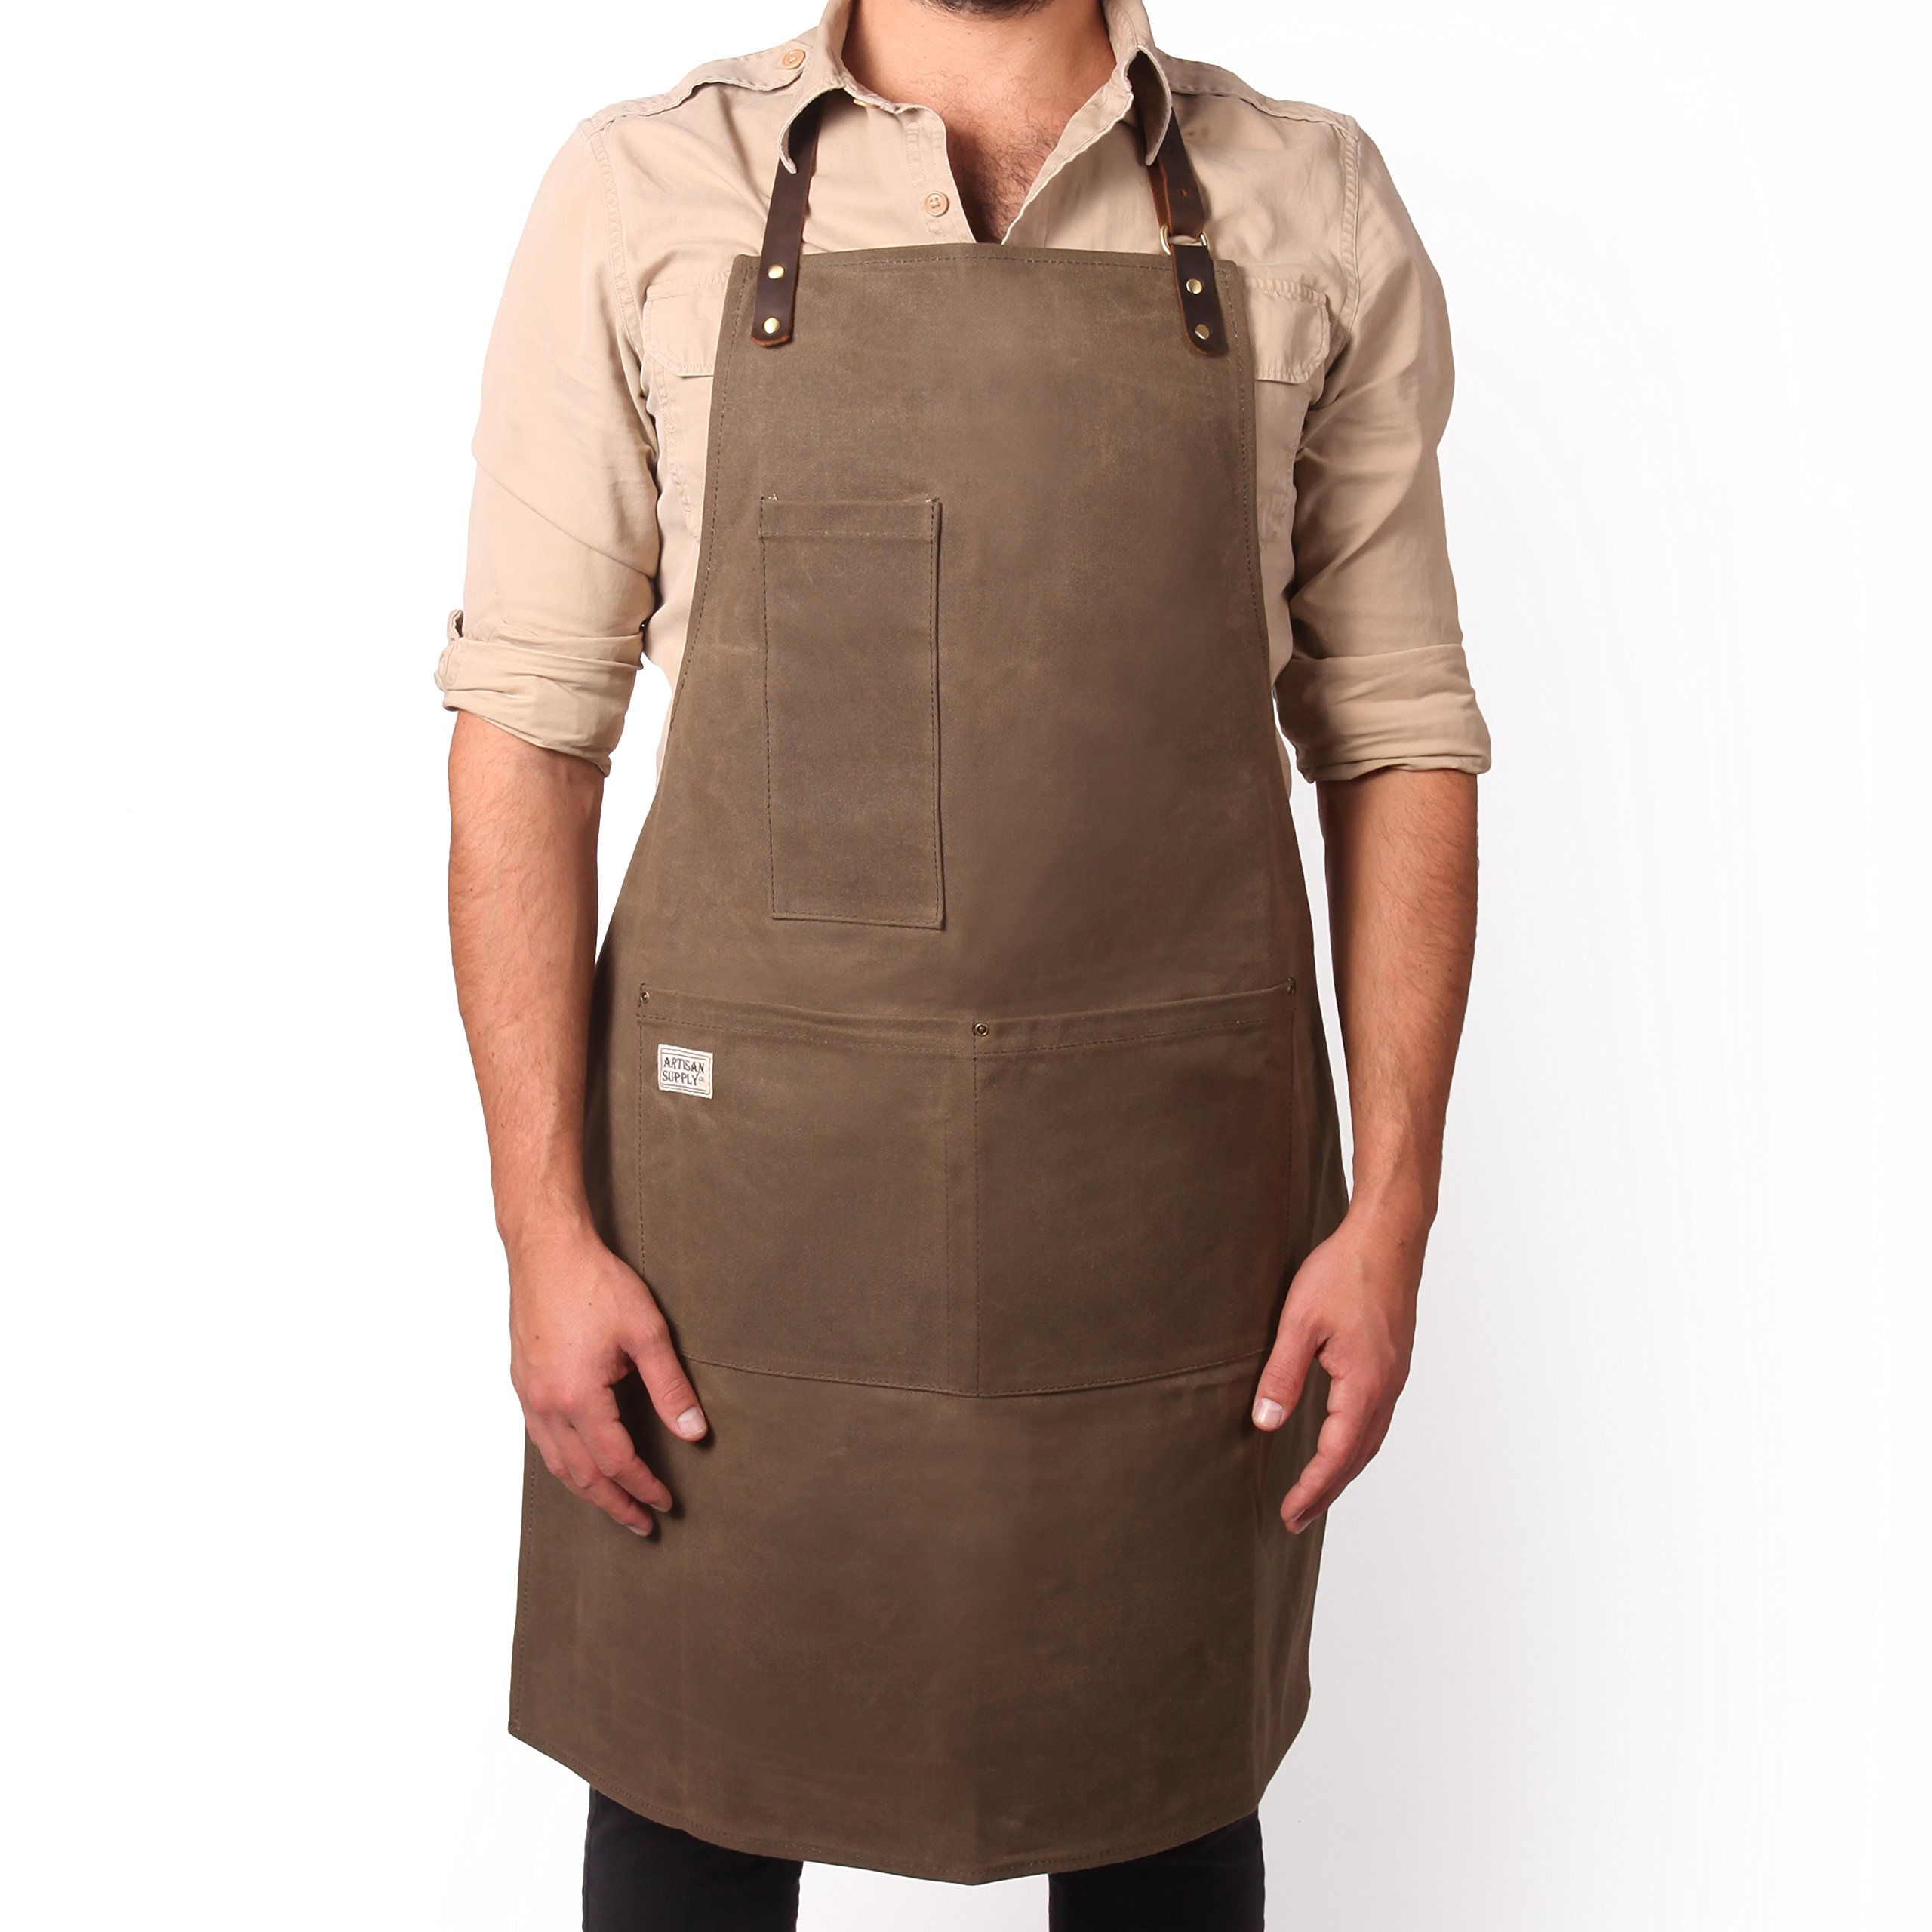 Vintage Inspired Craftsman Waxed Canvas Work Apron (LONG-BROWN) by Artisan Supply Co. - Made for BBQ Grill Masters, Butchers, Bakers, Chefs, Machinist and More by Artisan Supply